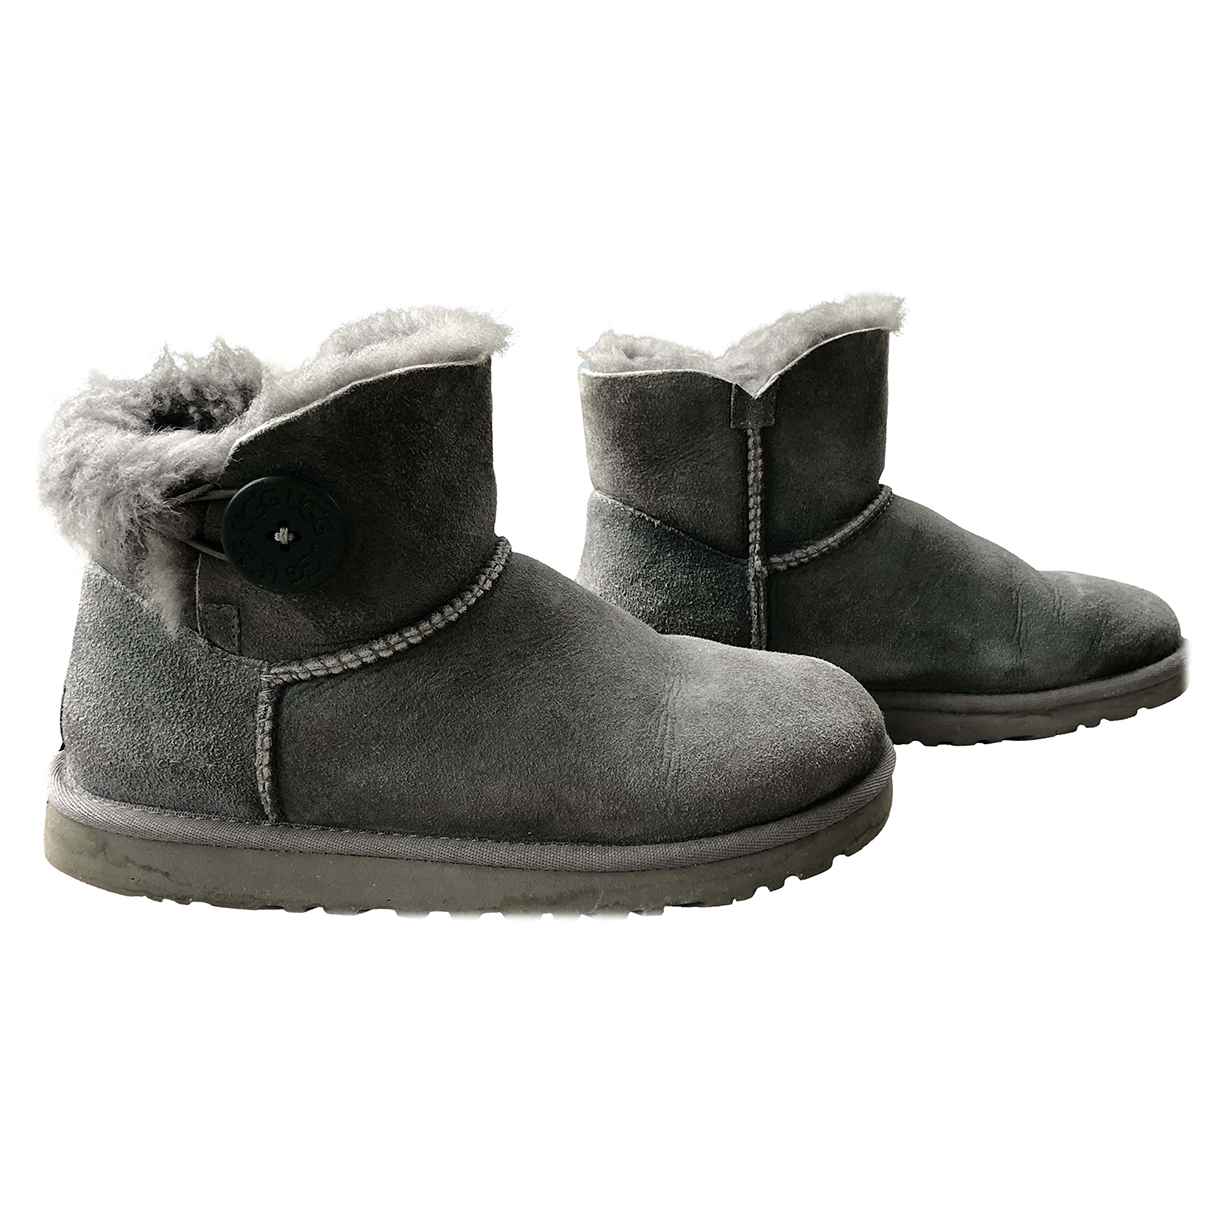 Ugg N Grey Suede Ankle boots for Women 36 EU